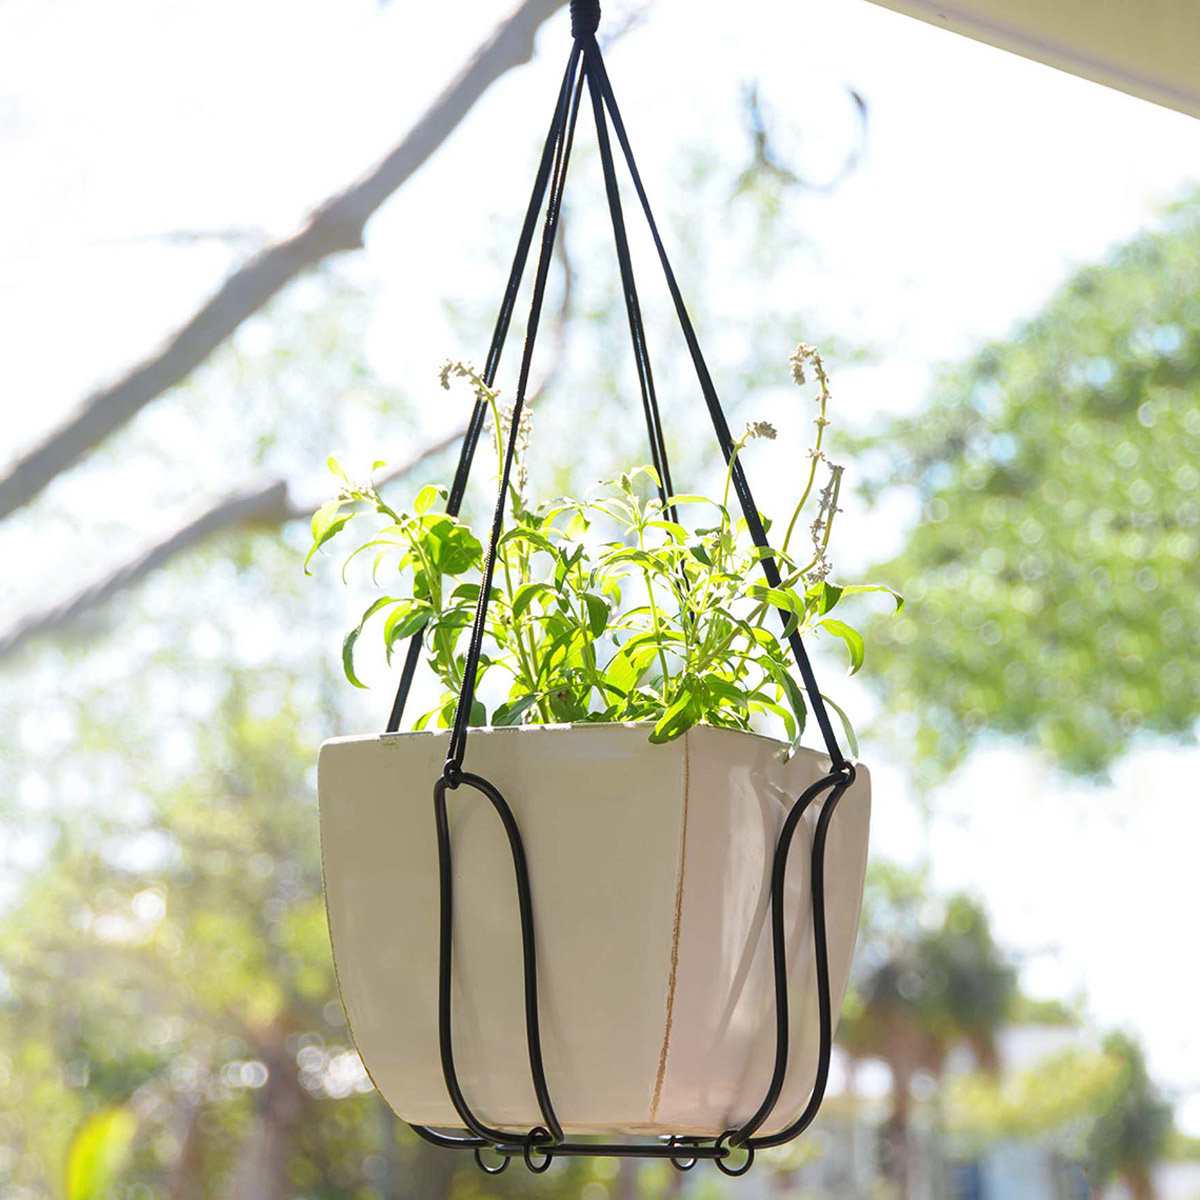 Salient Adjustable Plant Hanger Turns Almost Any Pot Into A Hanging Planter Adjustable Plant Hanger Turns Almost Any Pot Into A Hanging Metal Garden Plant Hangers Garden Wall Plant Hangers garden Garden Plant Hangers